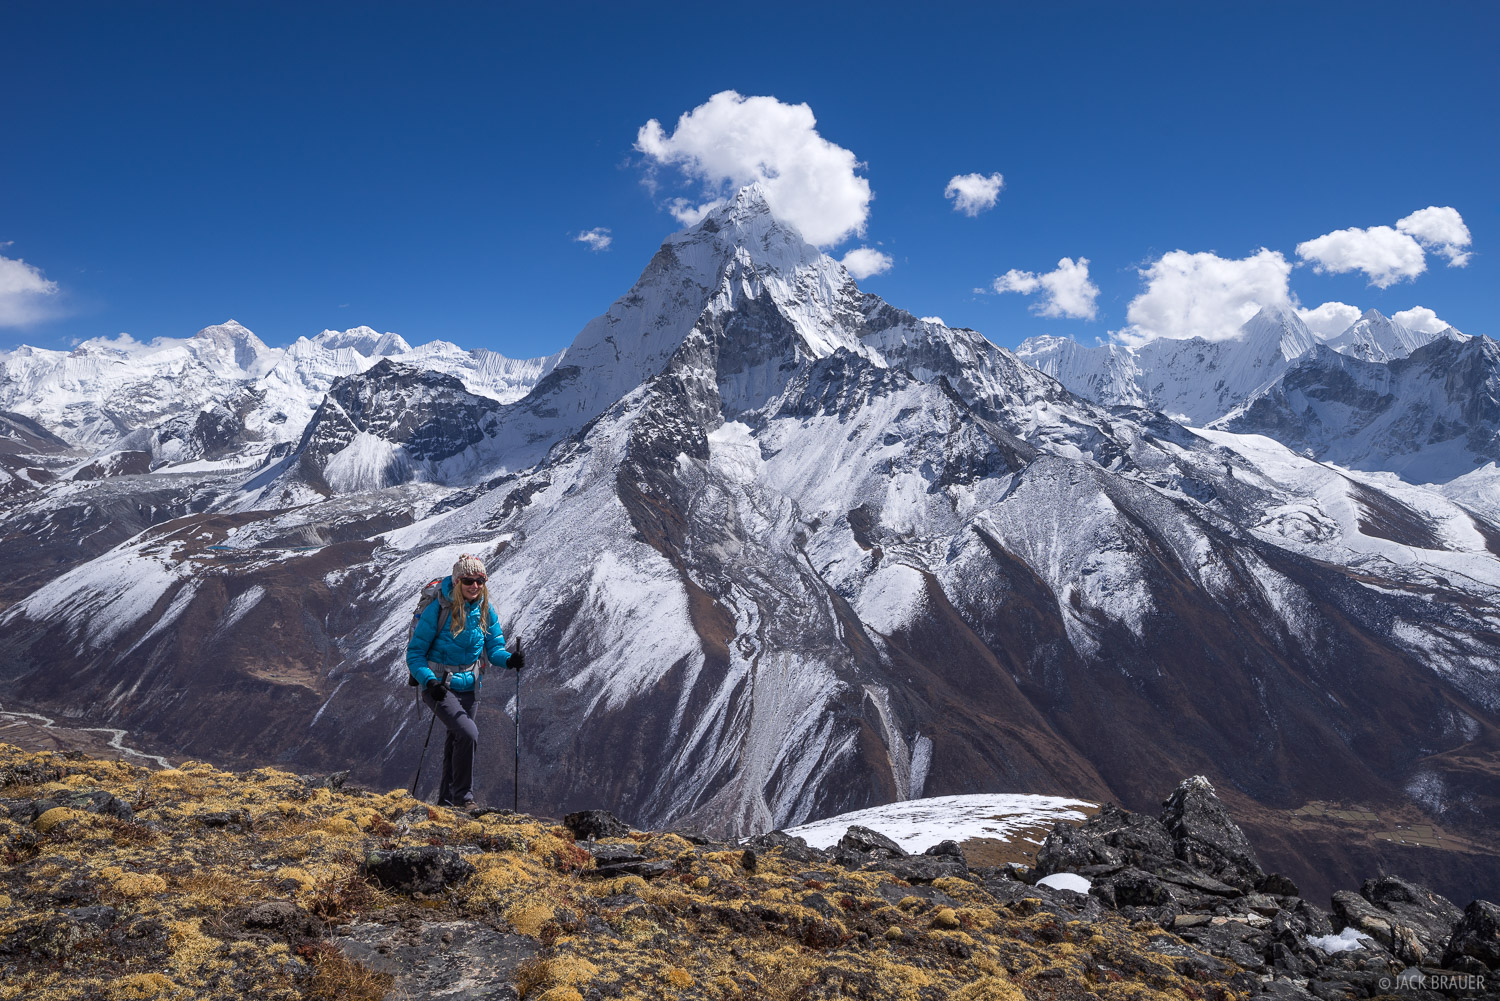 Ama Dablam,Asia,Himalaya,Khumbu,Nepal, hiking, photo